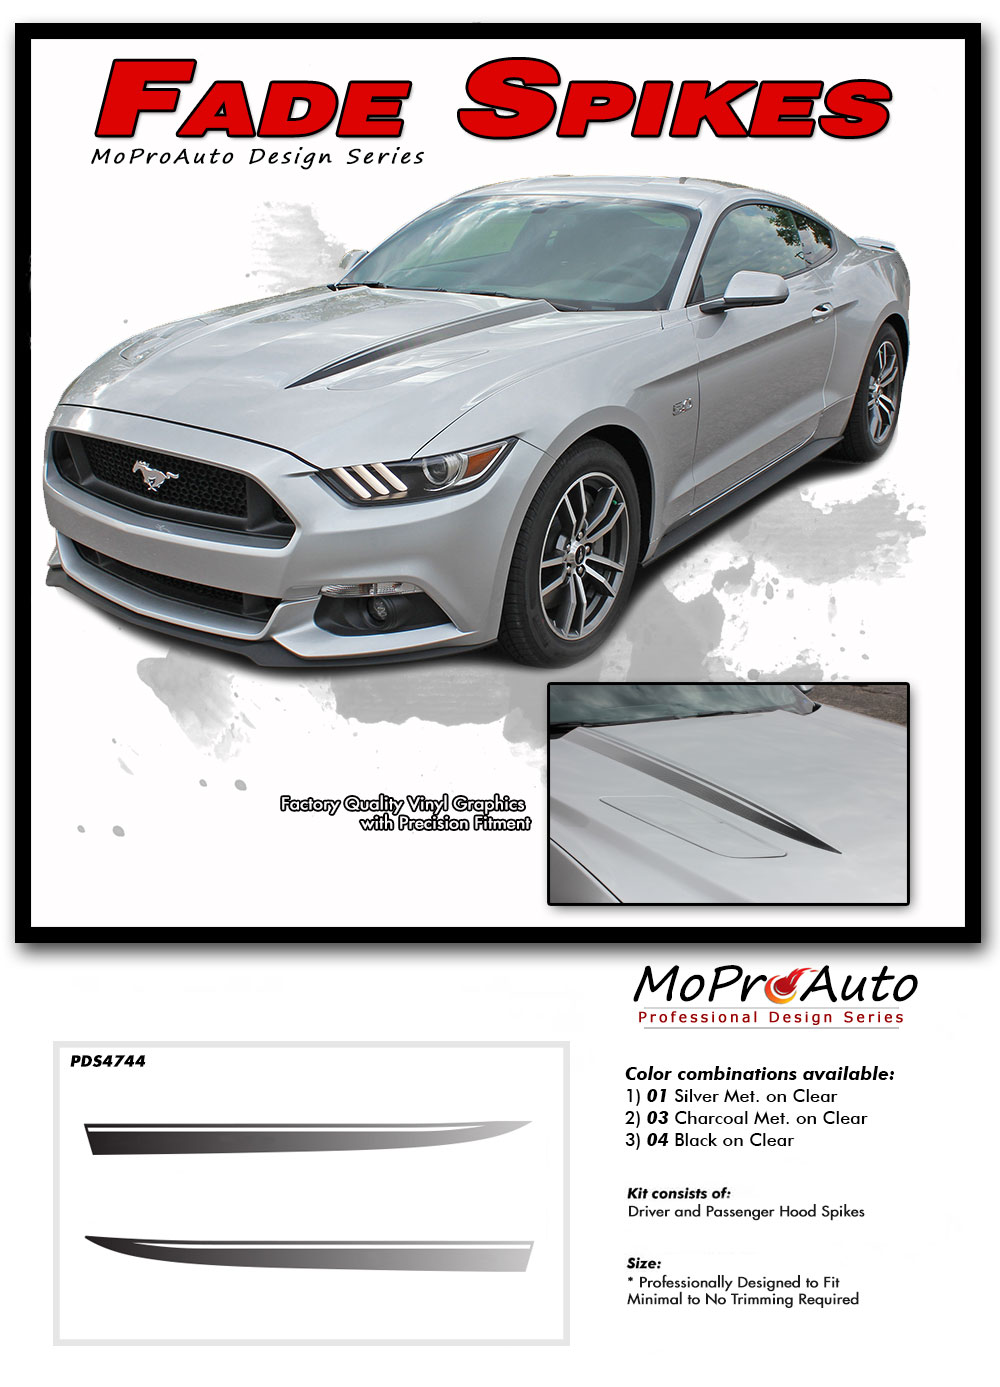 Ford Mustang Fade Rally Faded Hood Spears Spikes Stripes Ebony Racing Striping Silver Vinyl Graphics Decals